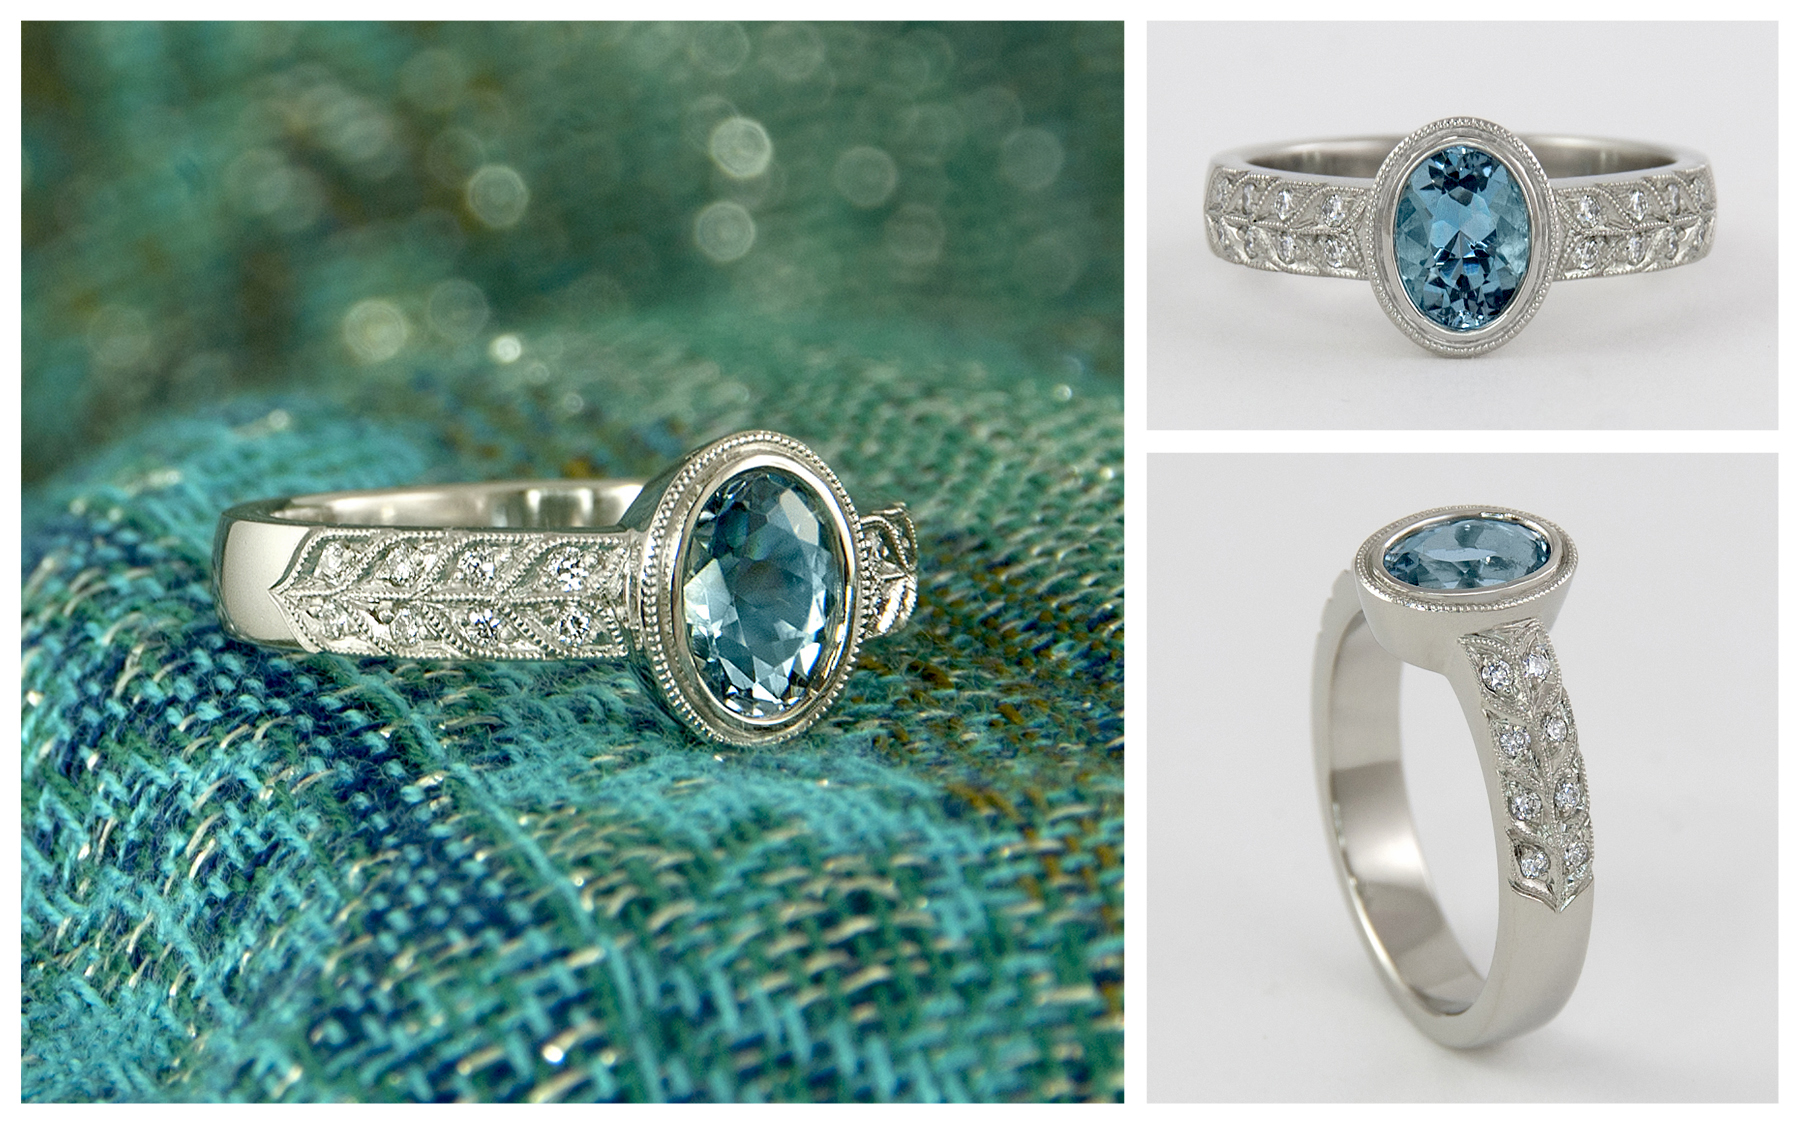 Bezel Set Aquamarine Ring With Double Row Millgrain